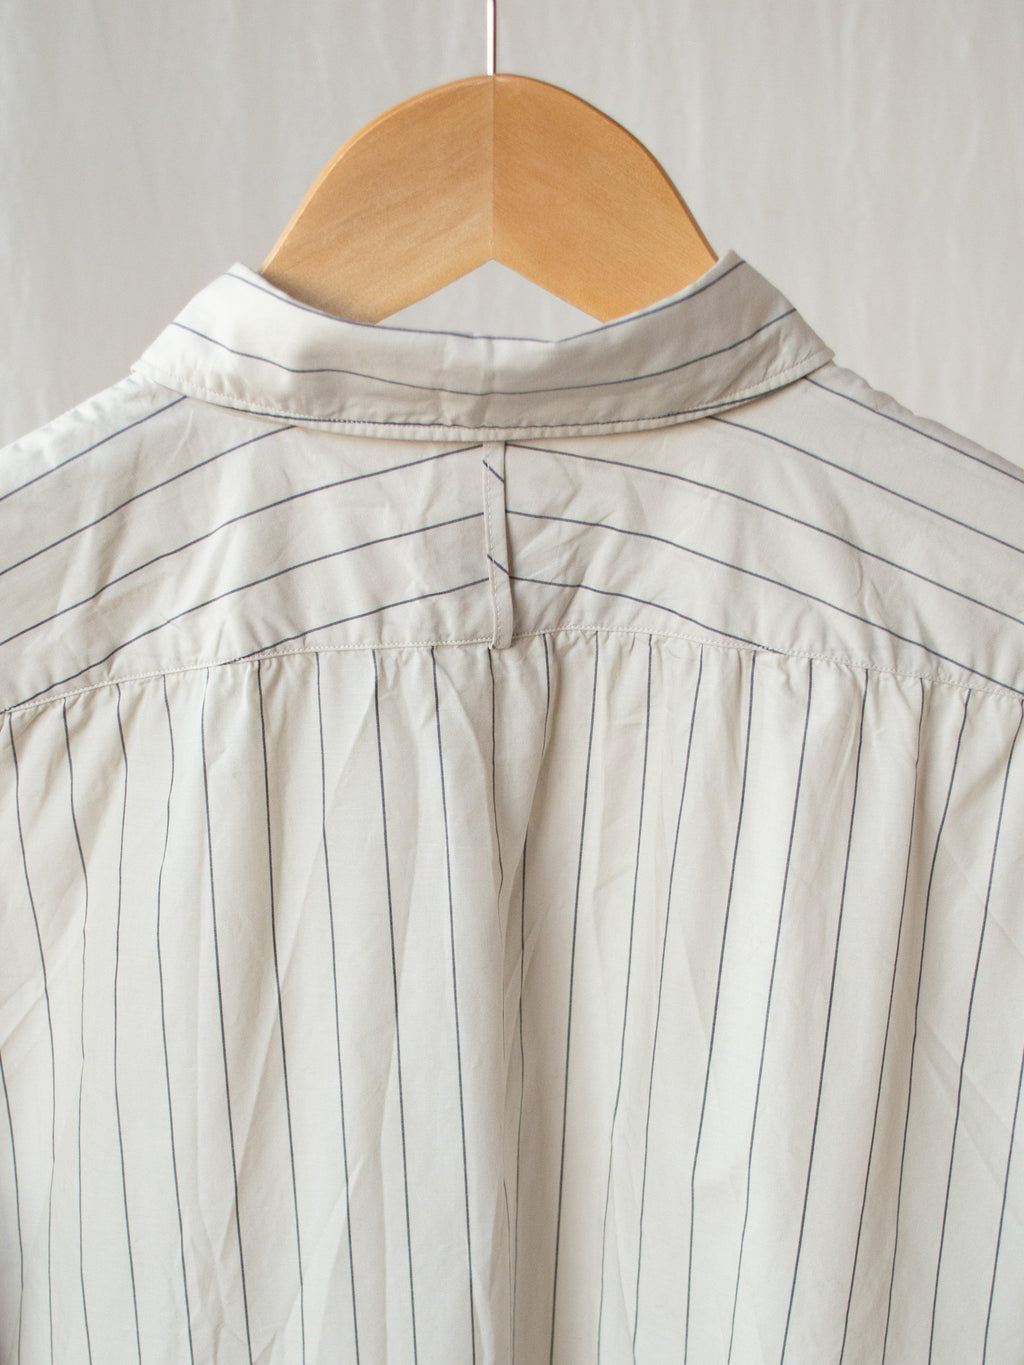 Namu Shop - Phlannel Anonymous Shirt - Beige Stripe